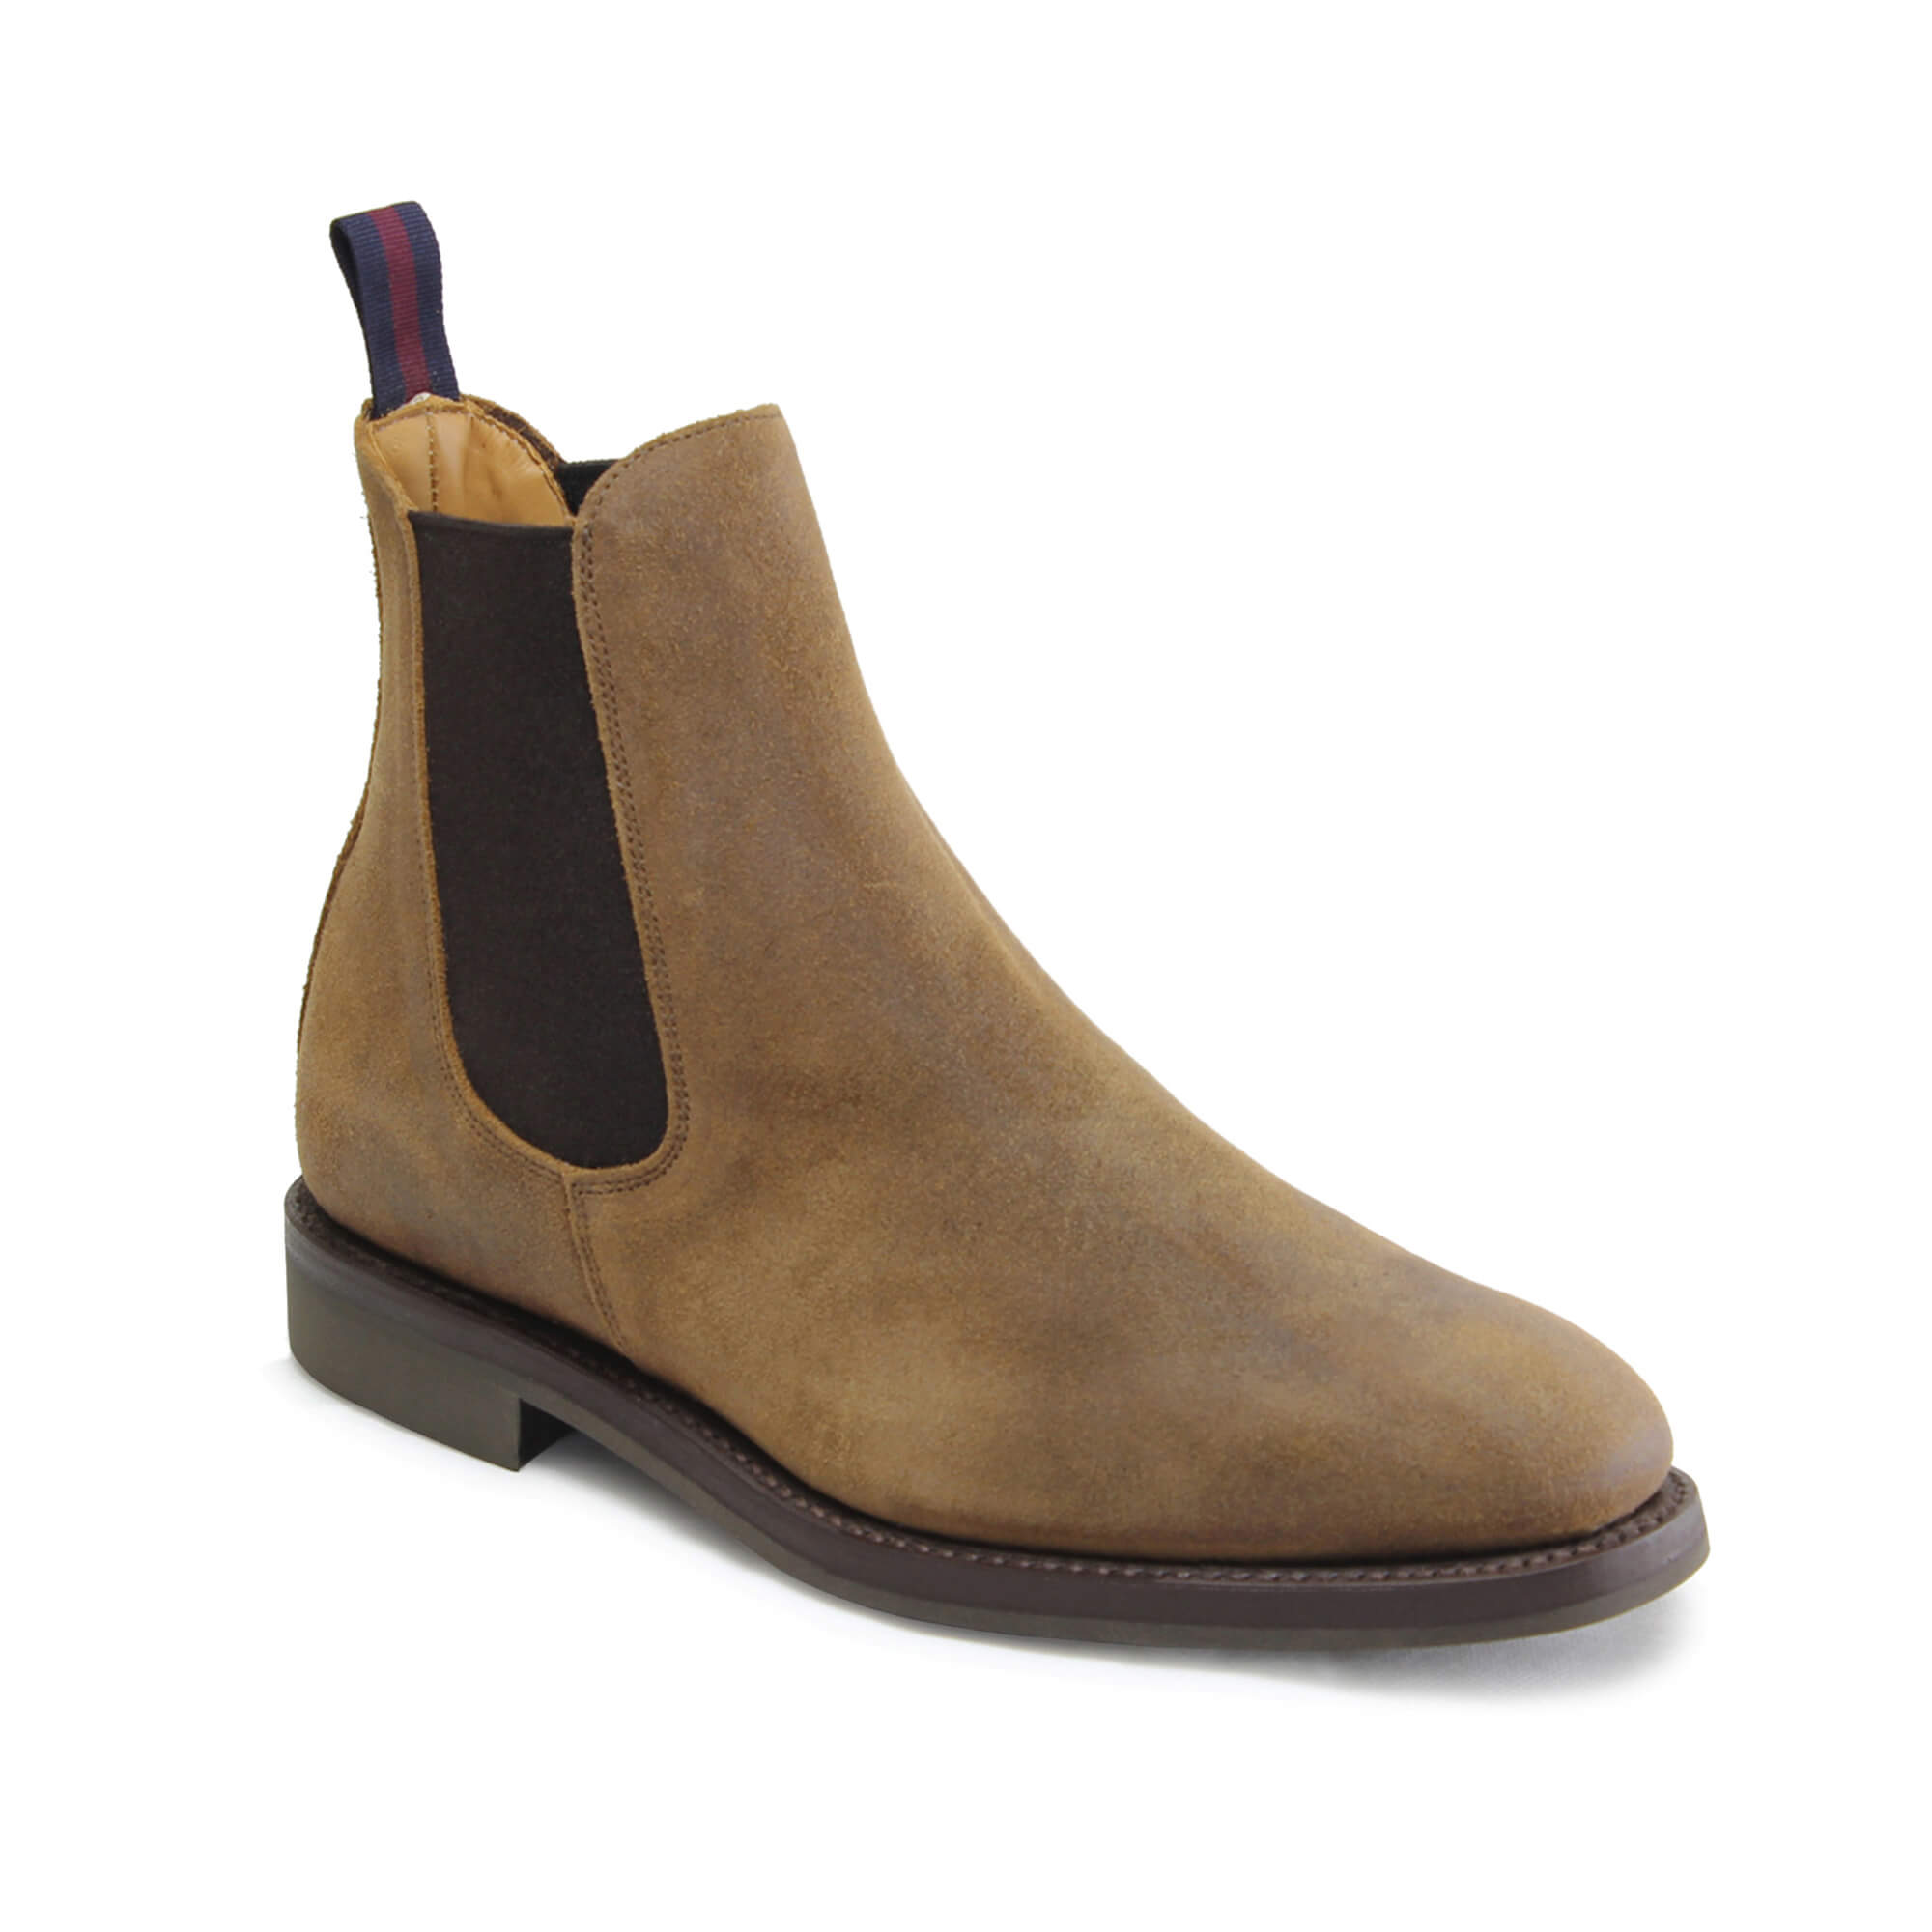 Sanders Men's Liam Suede Pull-On Boots 2056/SWS